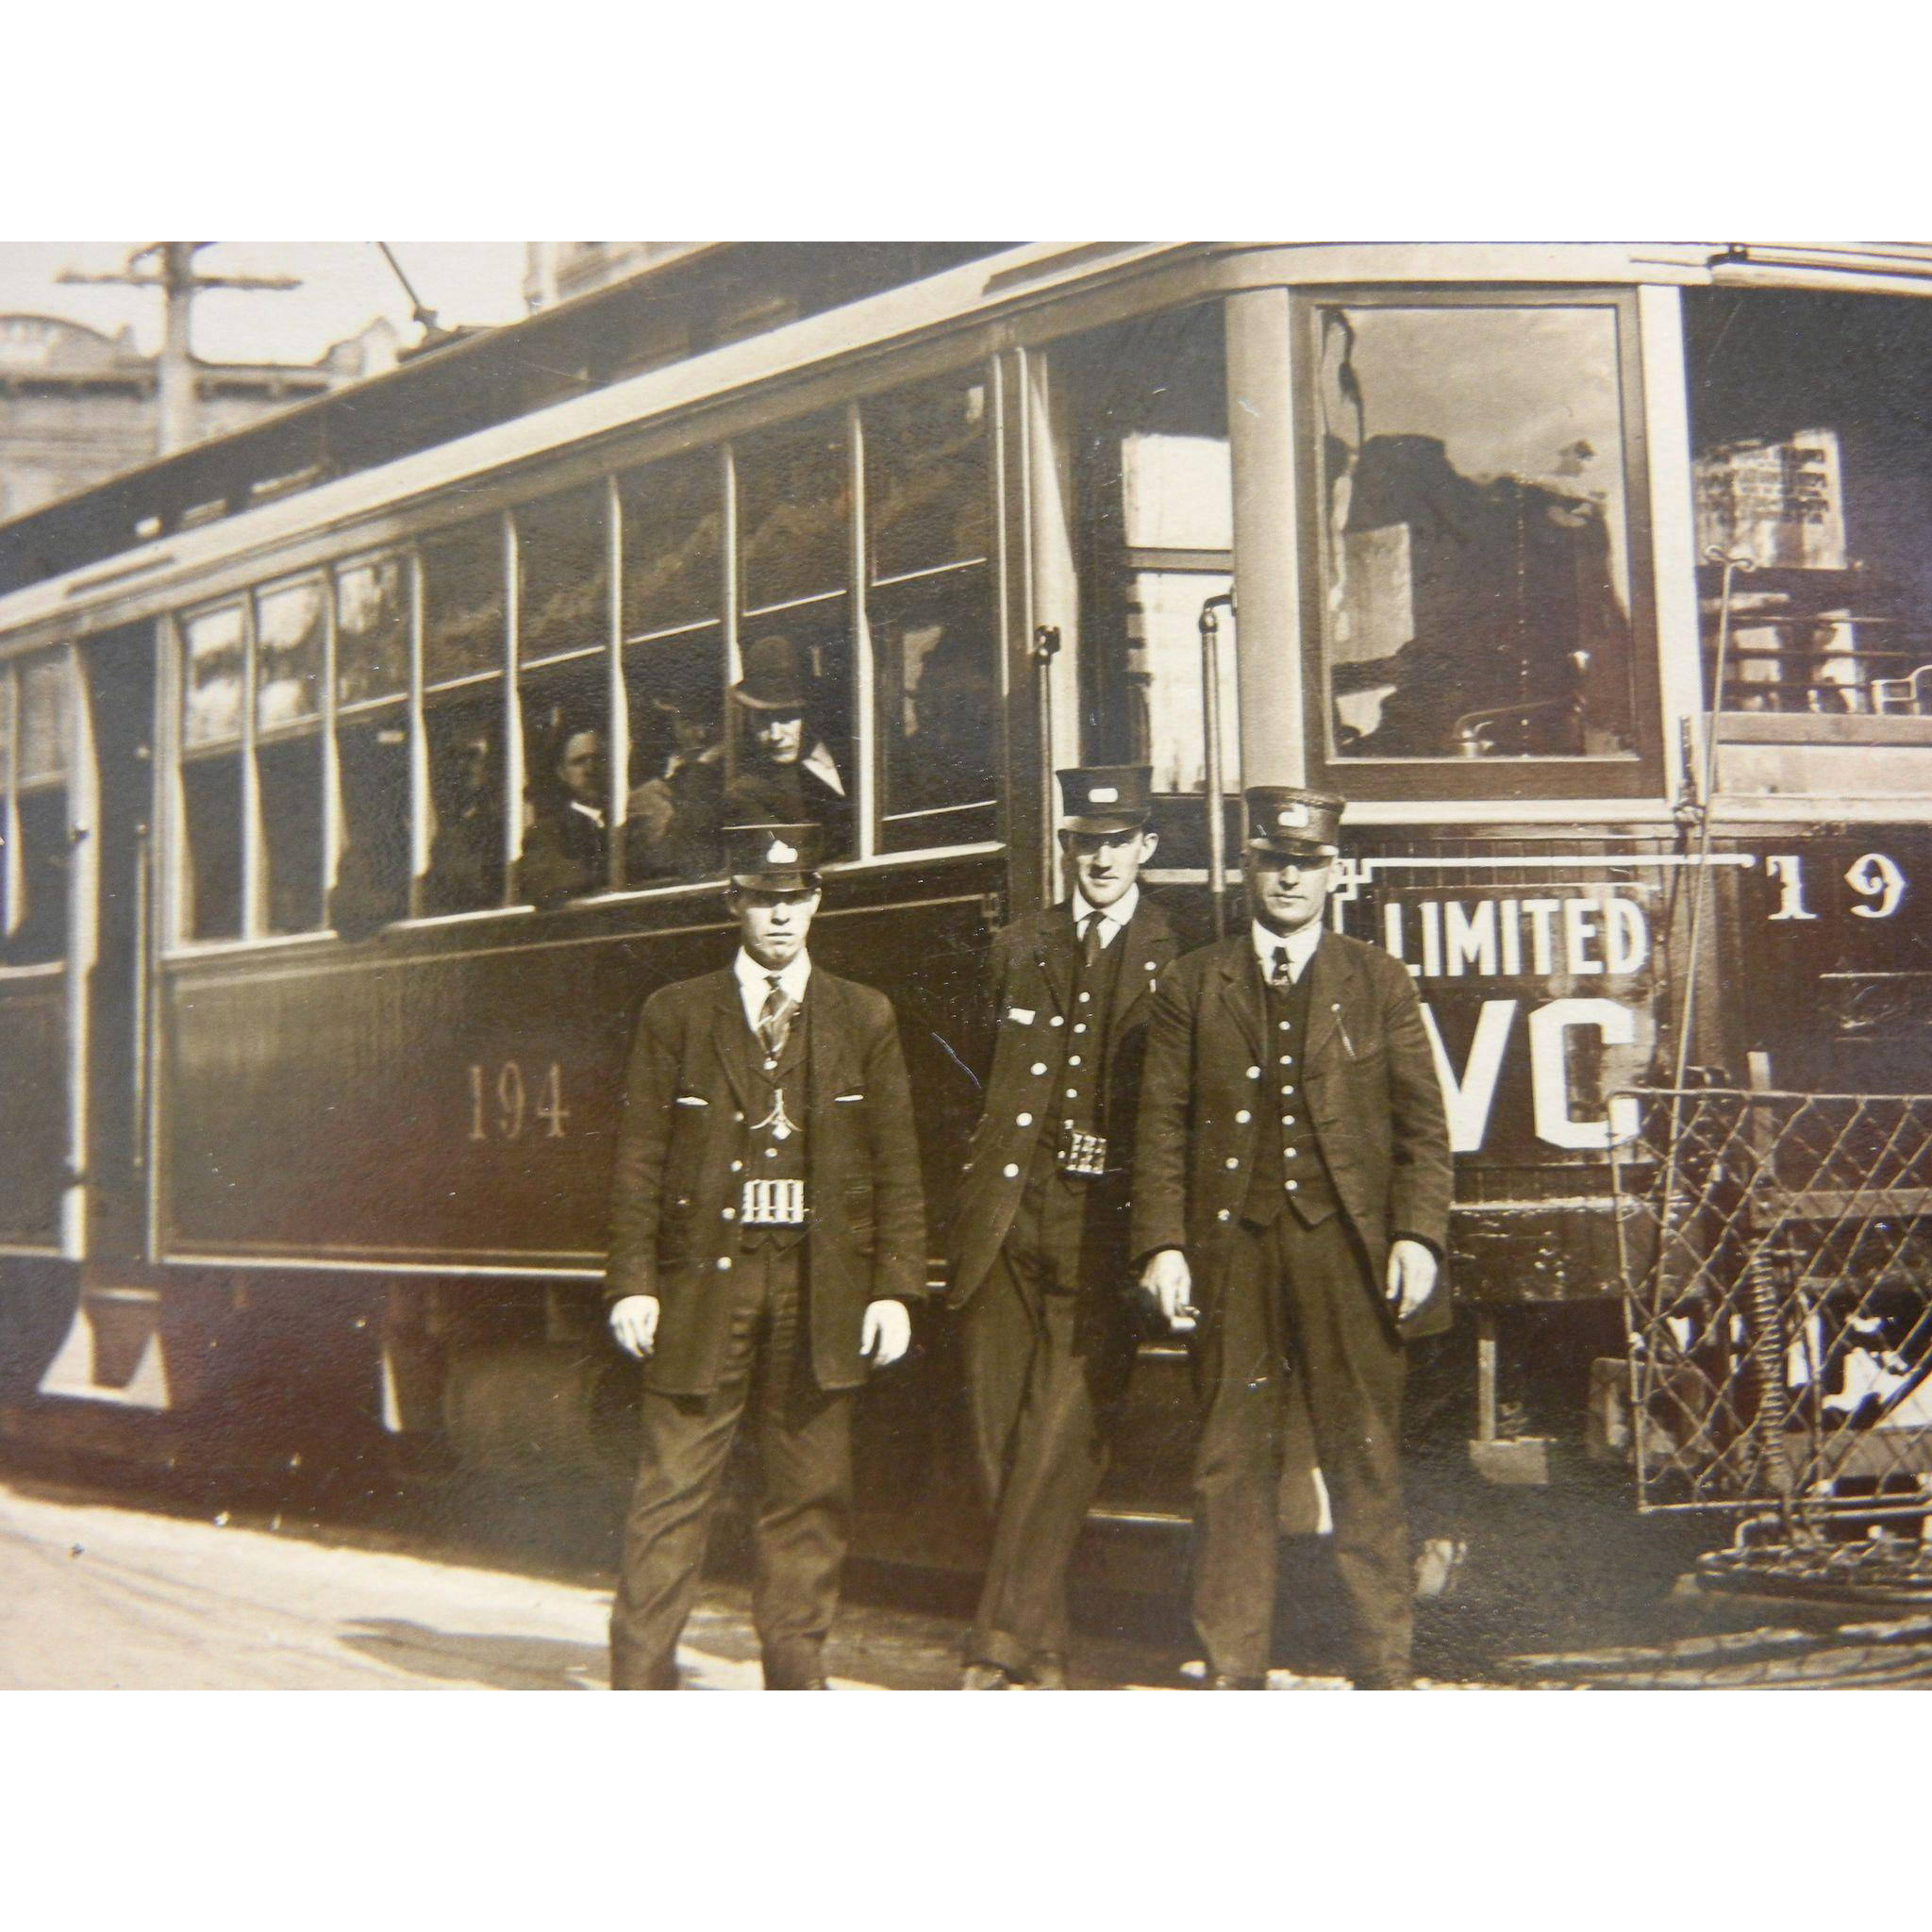 Vintage Original Photograph Postcard of Trolley in Vancouver Washington